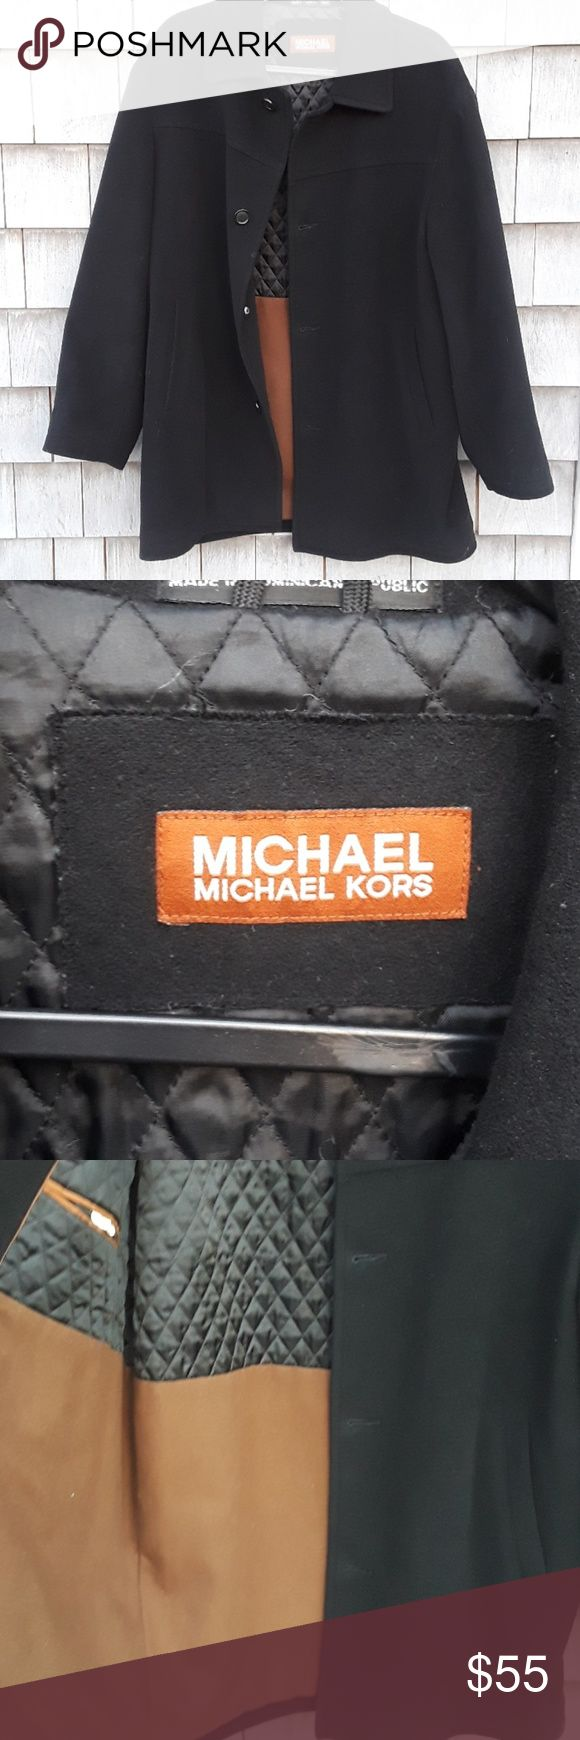 Michael Kors wool coat. G gorgeous men's dress coat can be worn formally or casually. In excellent condition bought my husband a new dress code for the holidays selling this one. Quilted satin lining inside super warm no rips or stains smoke-free home Michael Kors Jackets & Coats Pea Coats